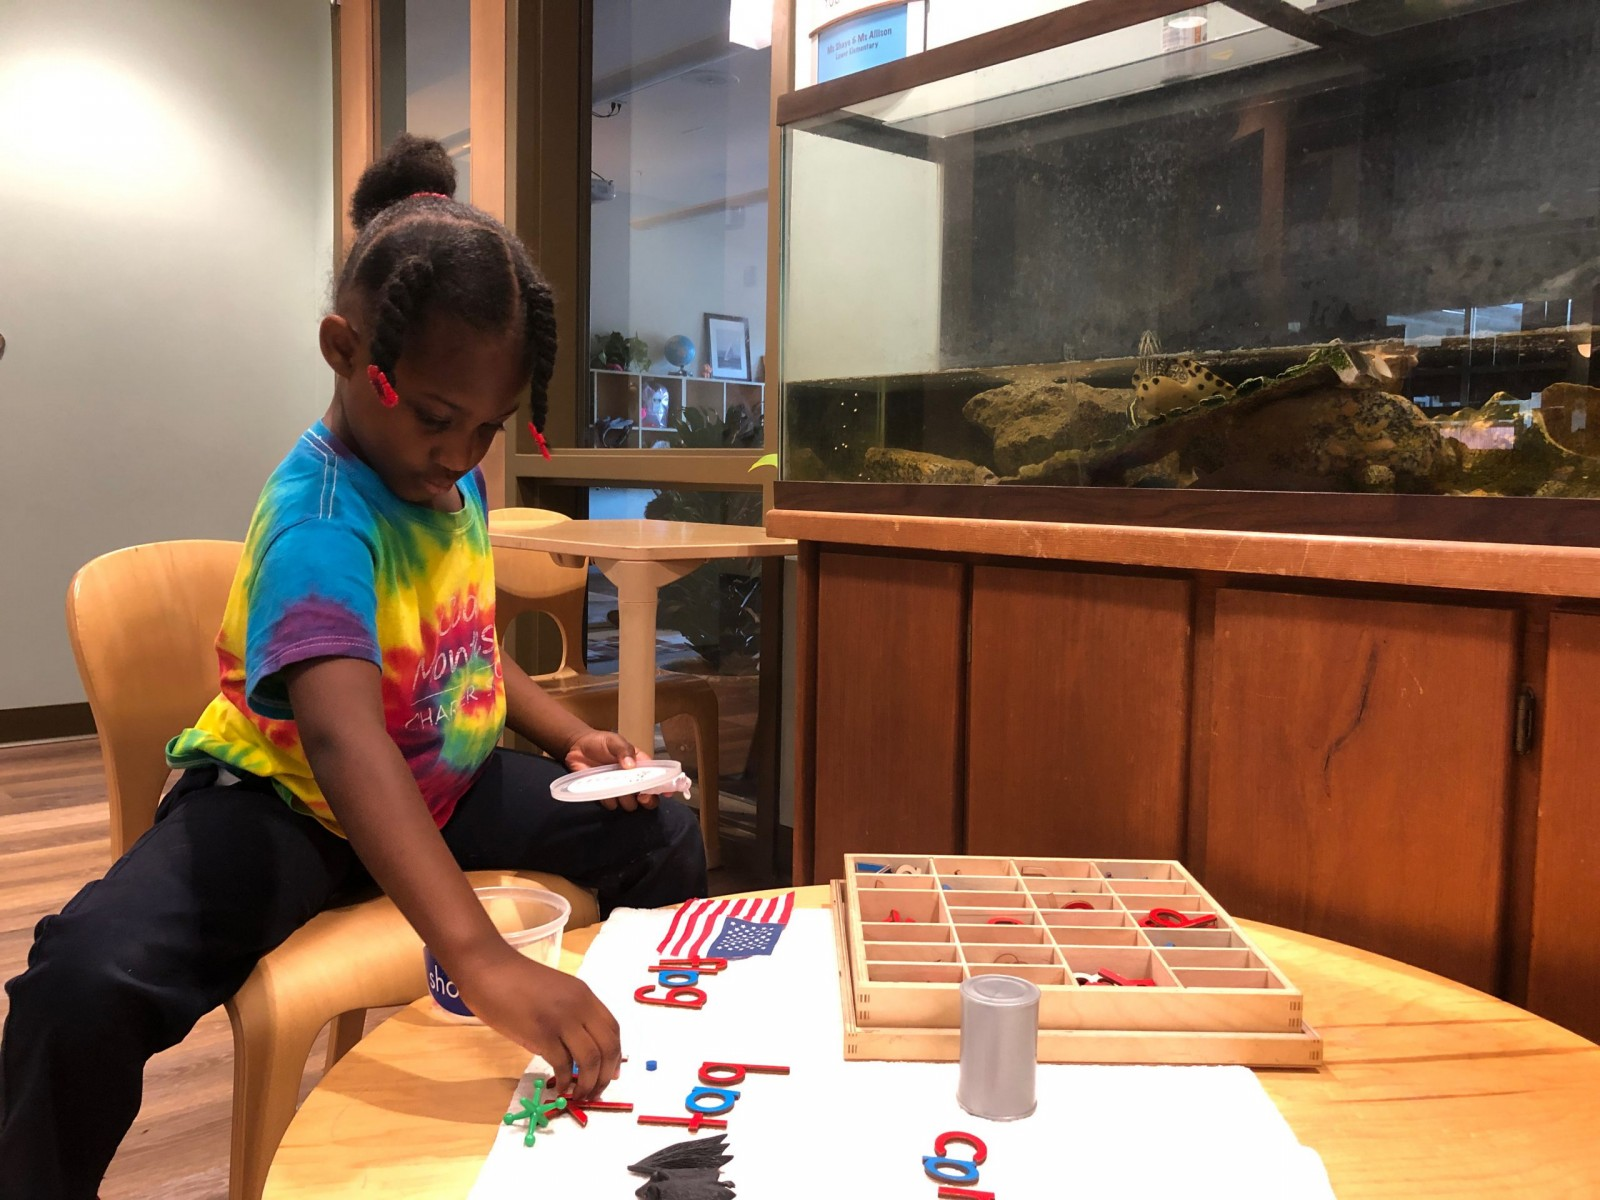 Lower Elementary student working on Montessori materials next to a fish tank with a swimming turtle